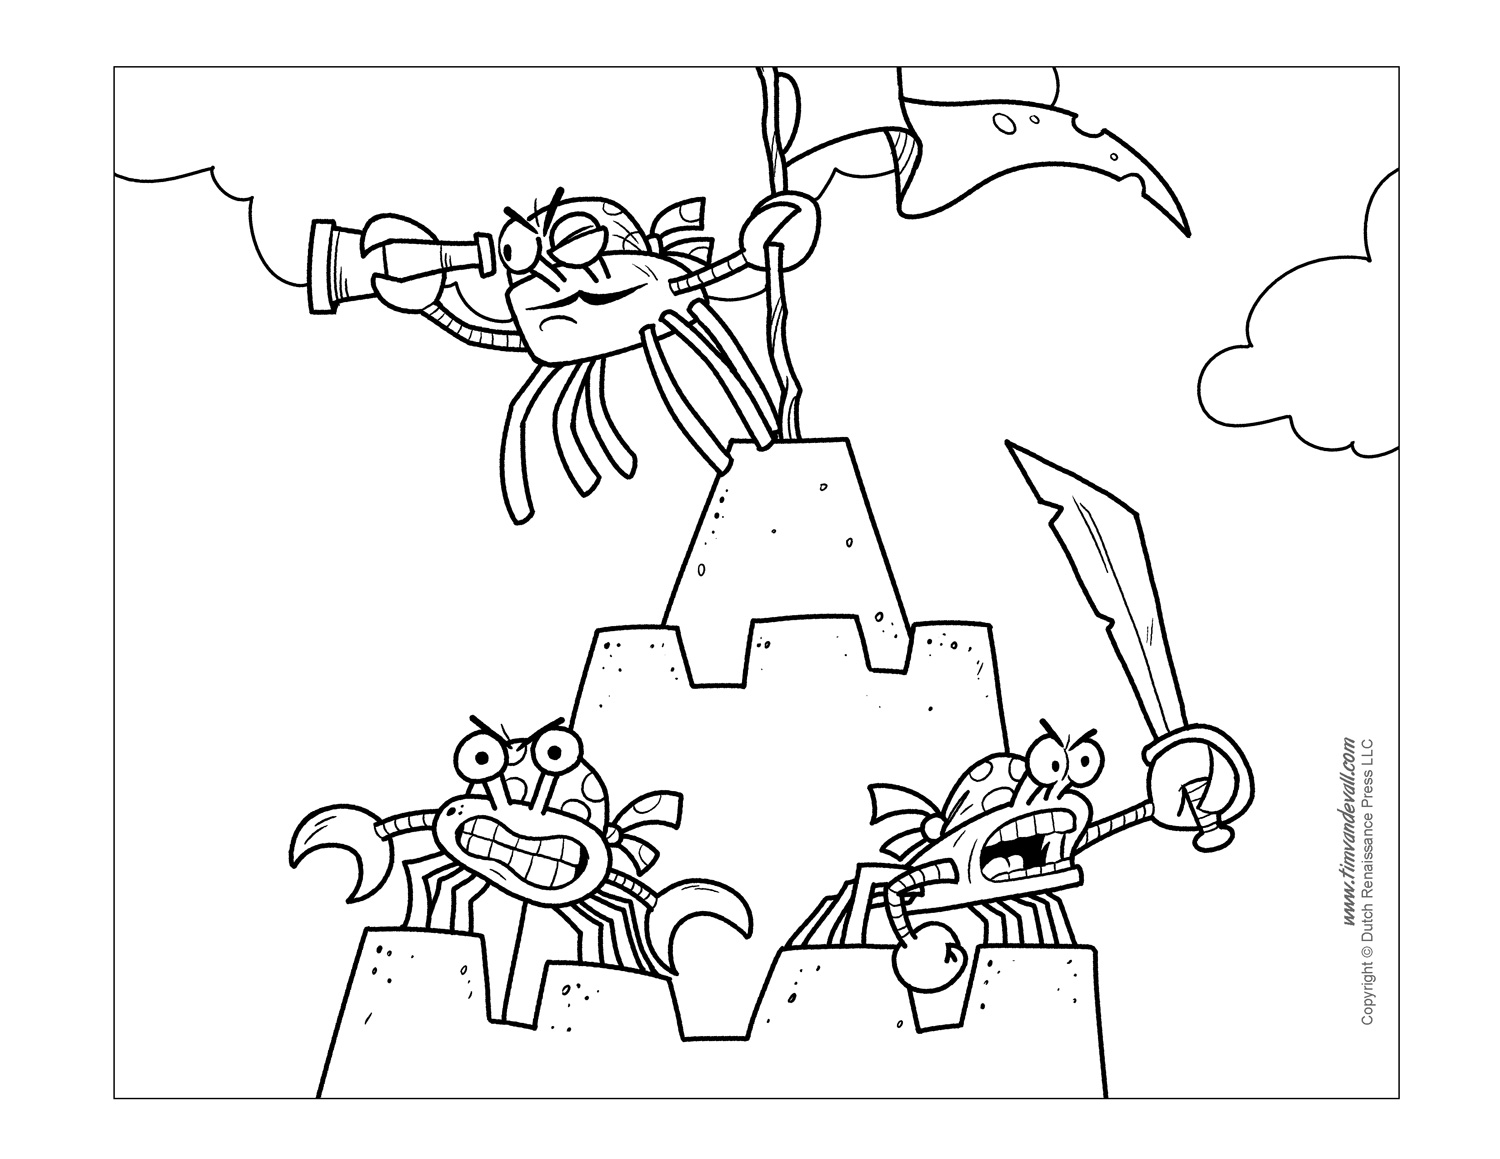 crab coloring sheet printable hermit crab coloring pages for kids cool2bkids sheet coloring crab 1 1